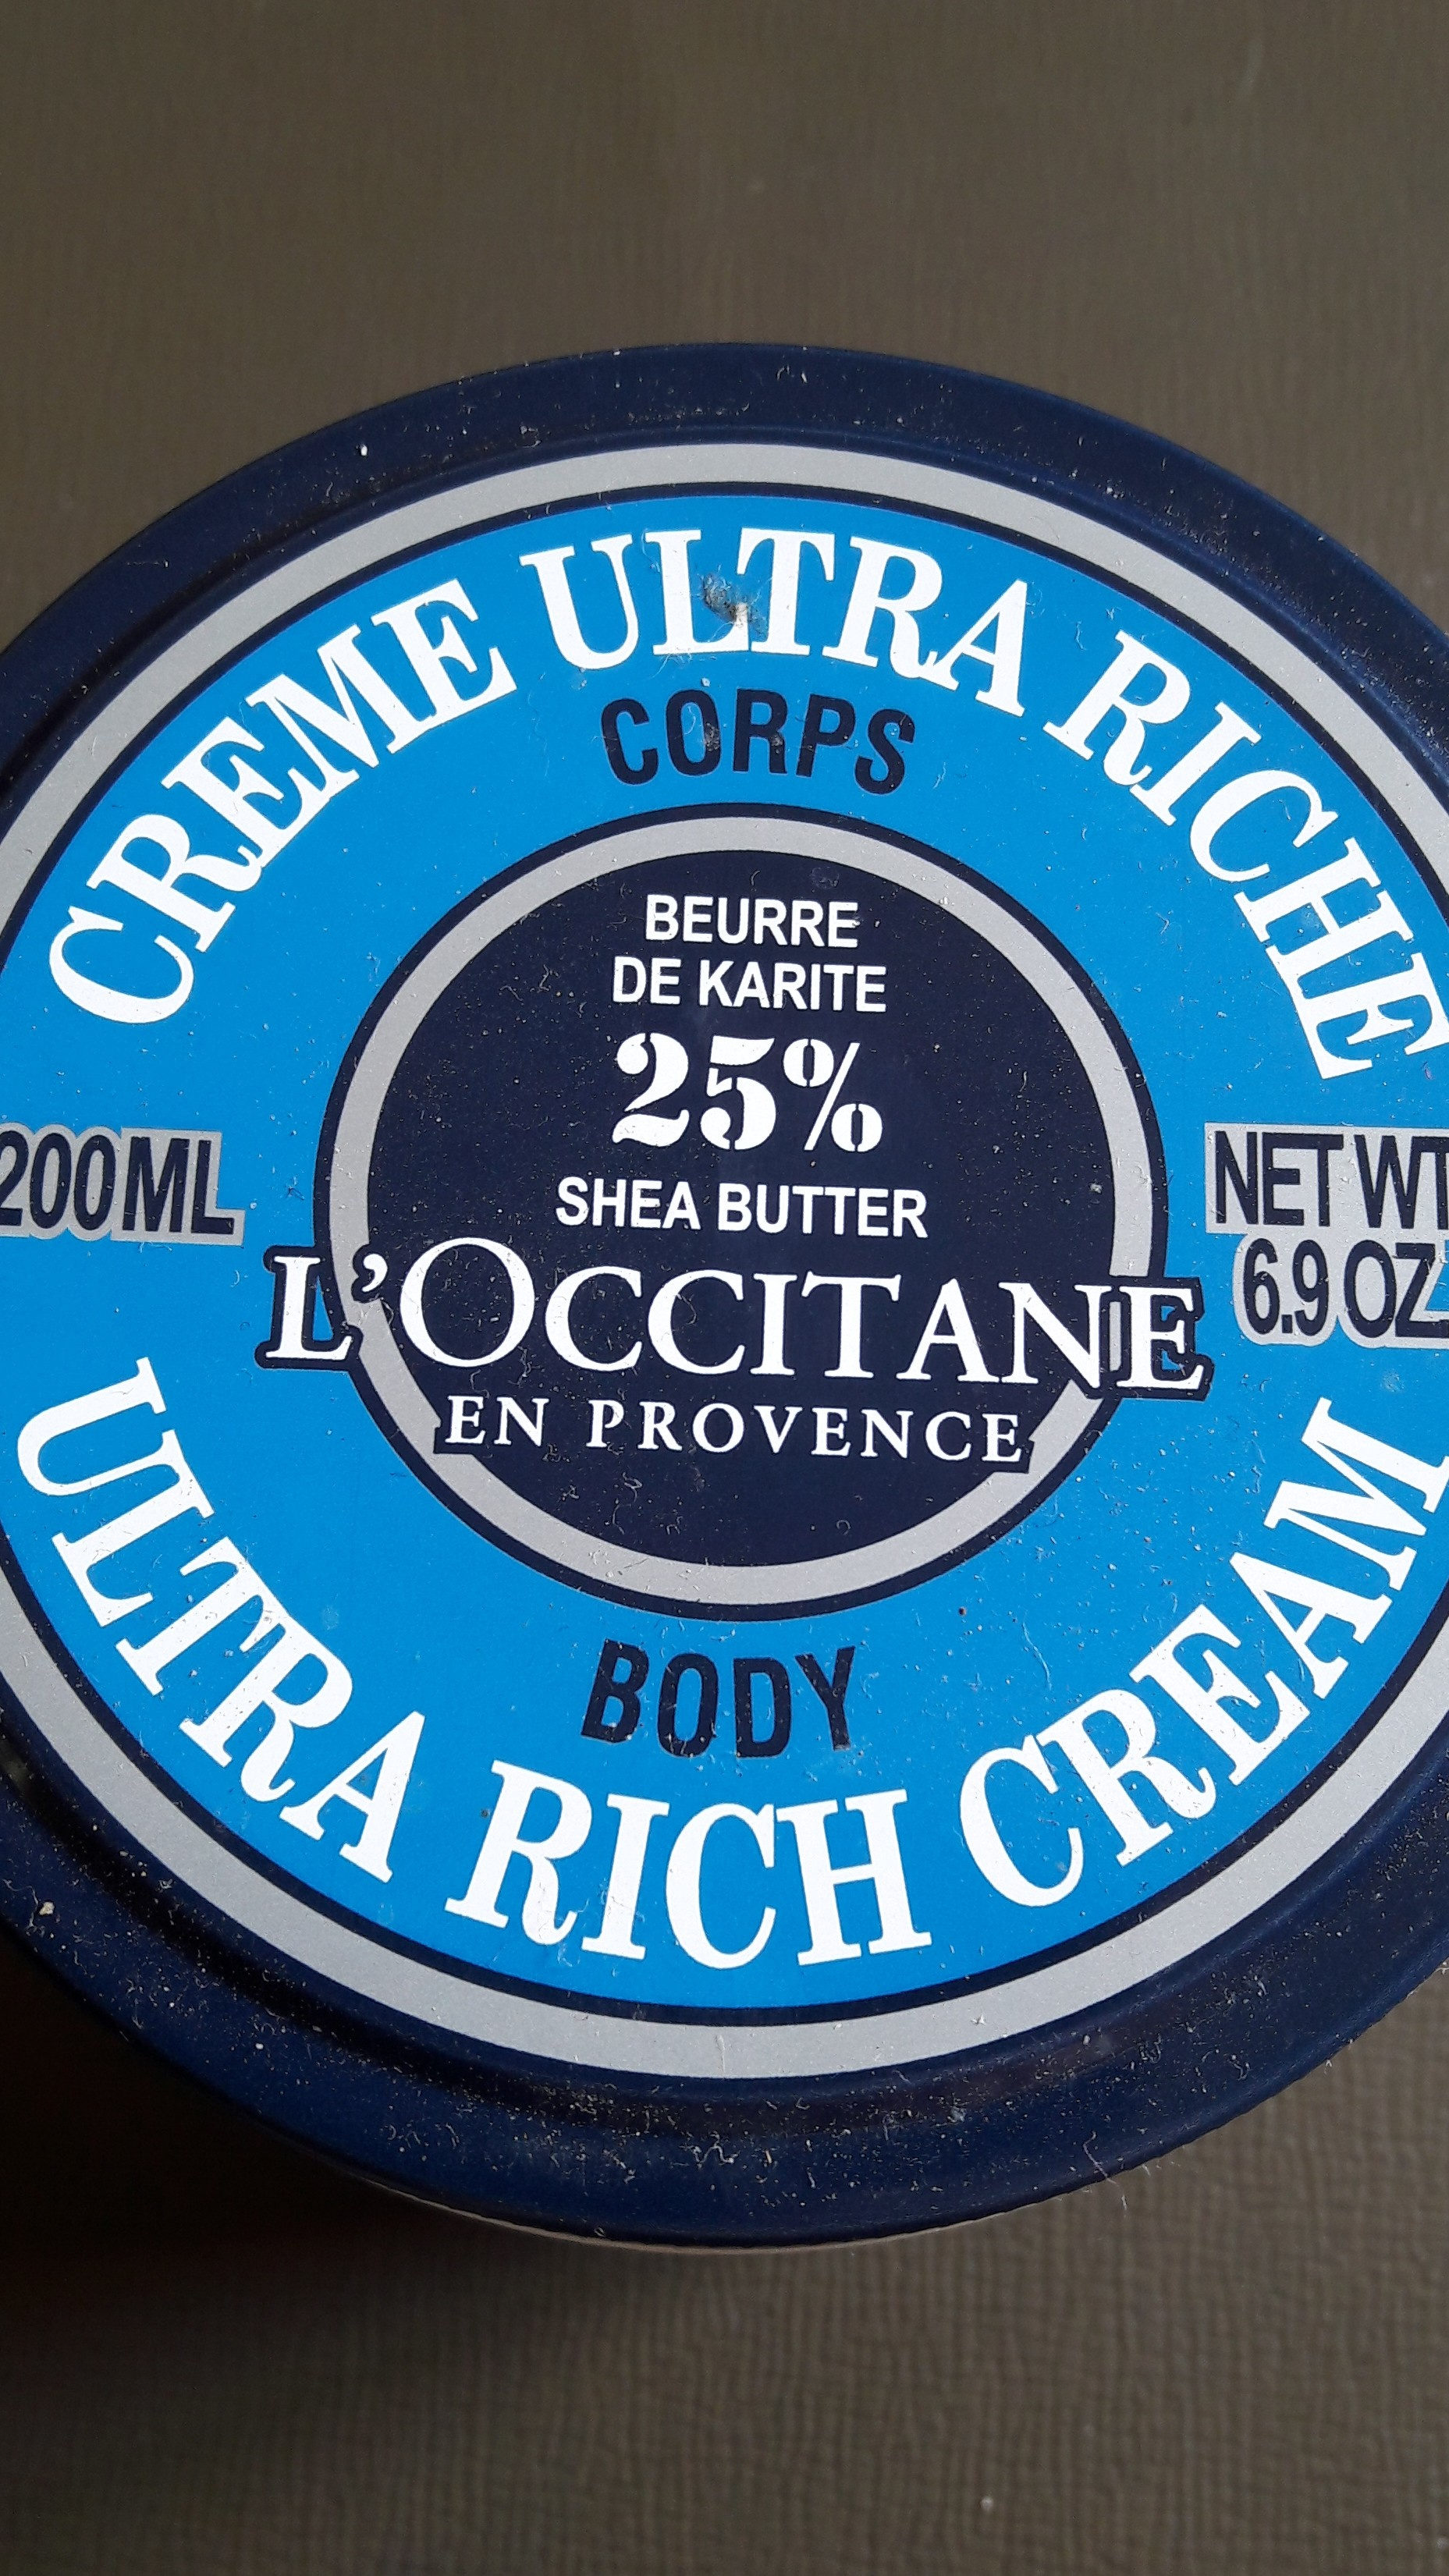 crème ultra riche corps - Product - fr